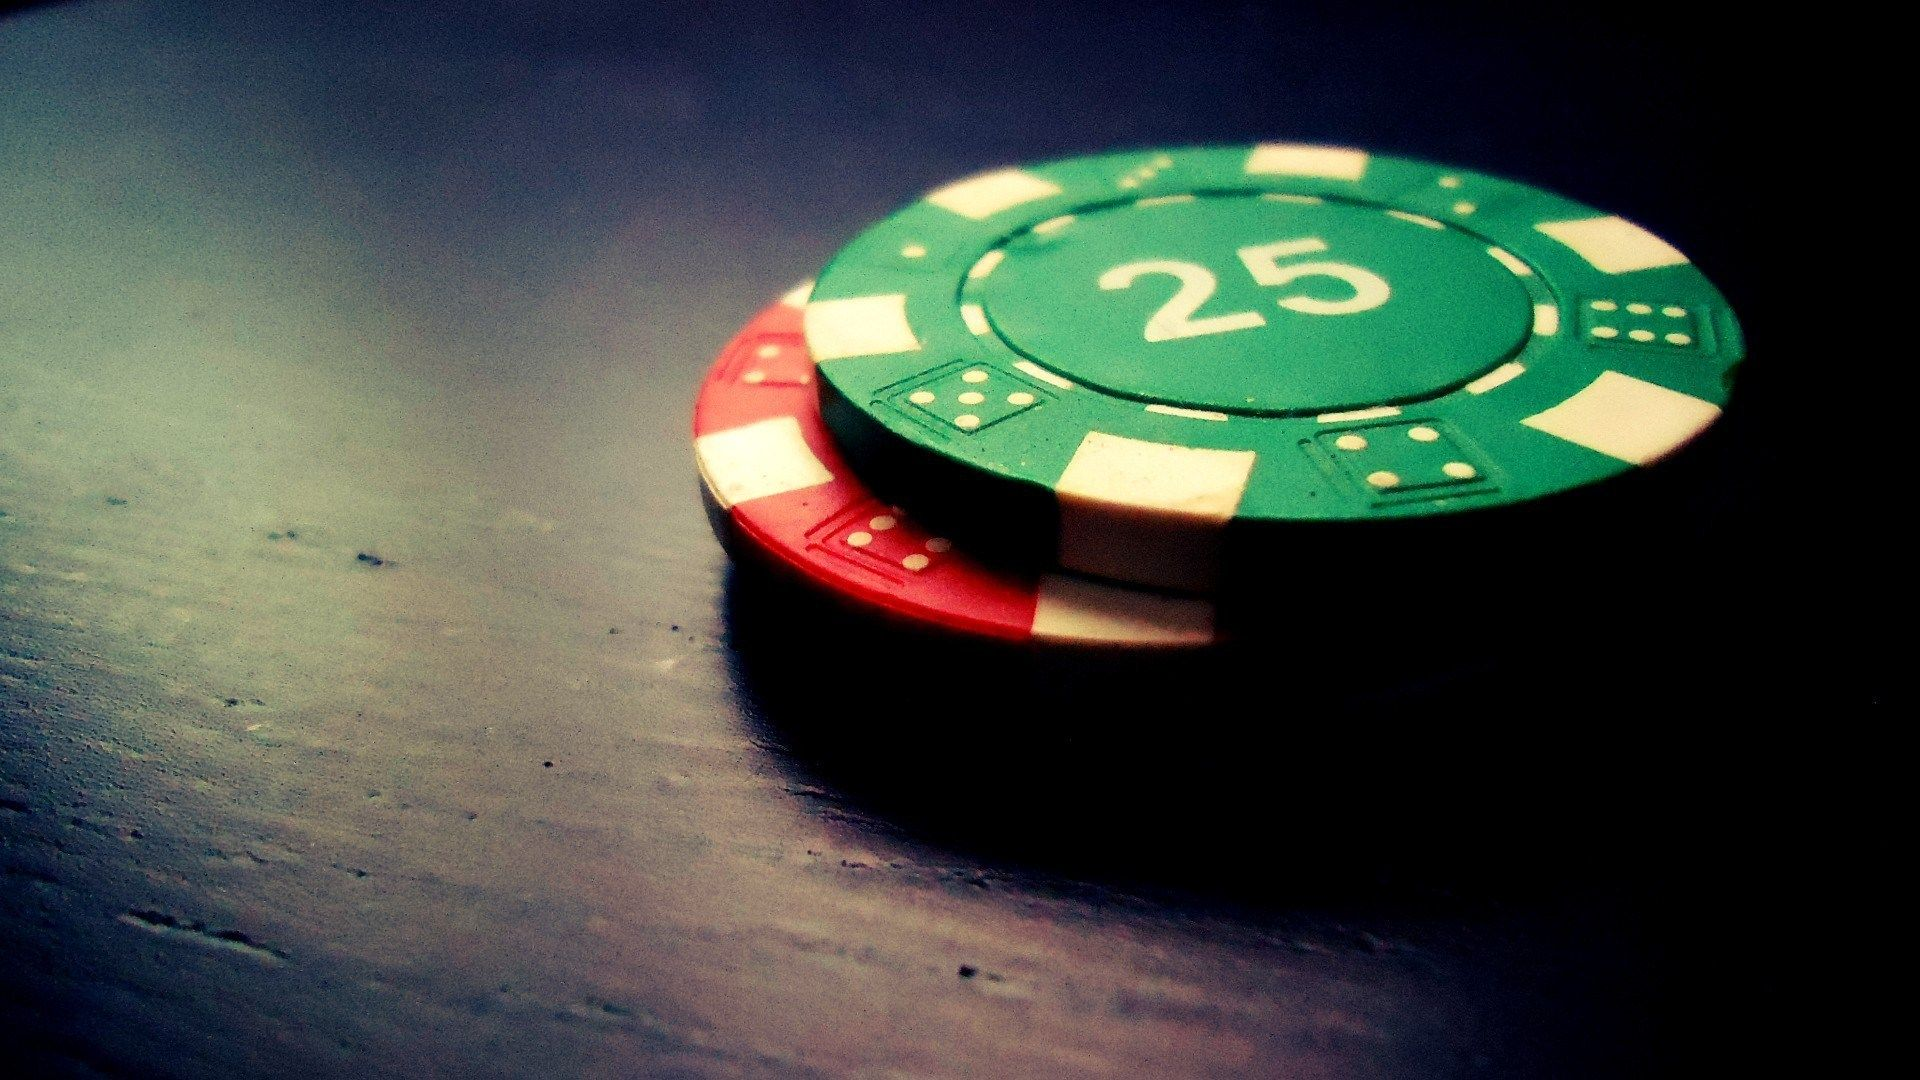 Interest -Ordering Methods To Online Casino